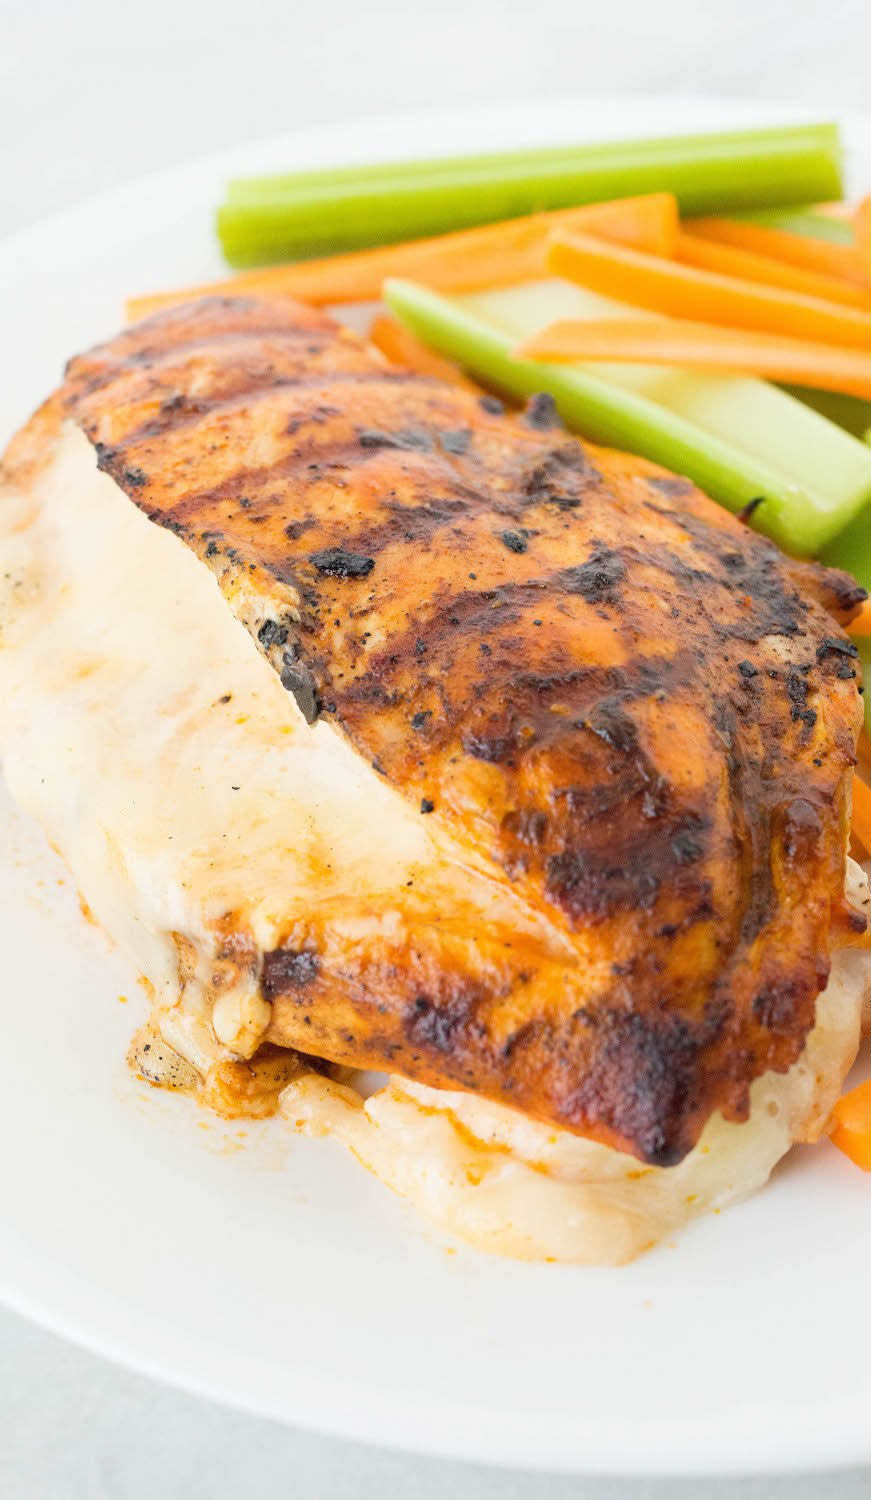 Take grilled chicken to a whole new level by brushing it with buffalo sauce, stuffing it with cheese, then grilling it to perfection. (Low carb)